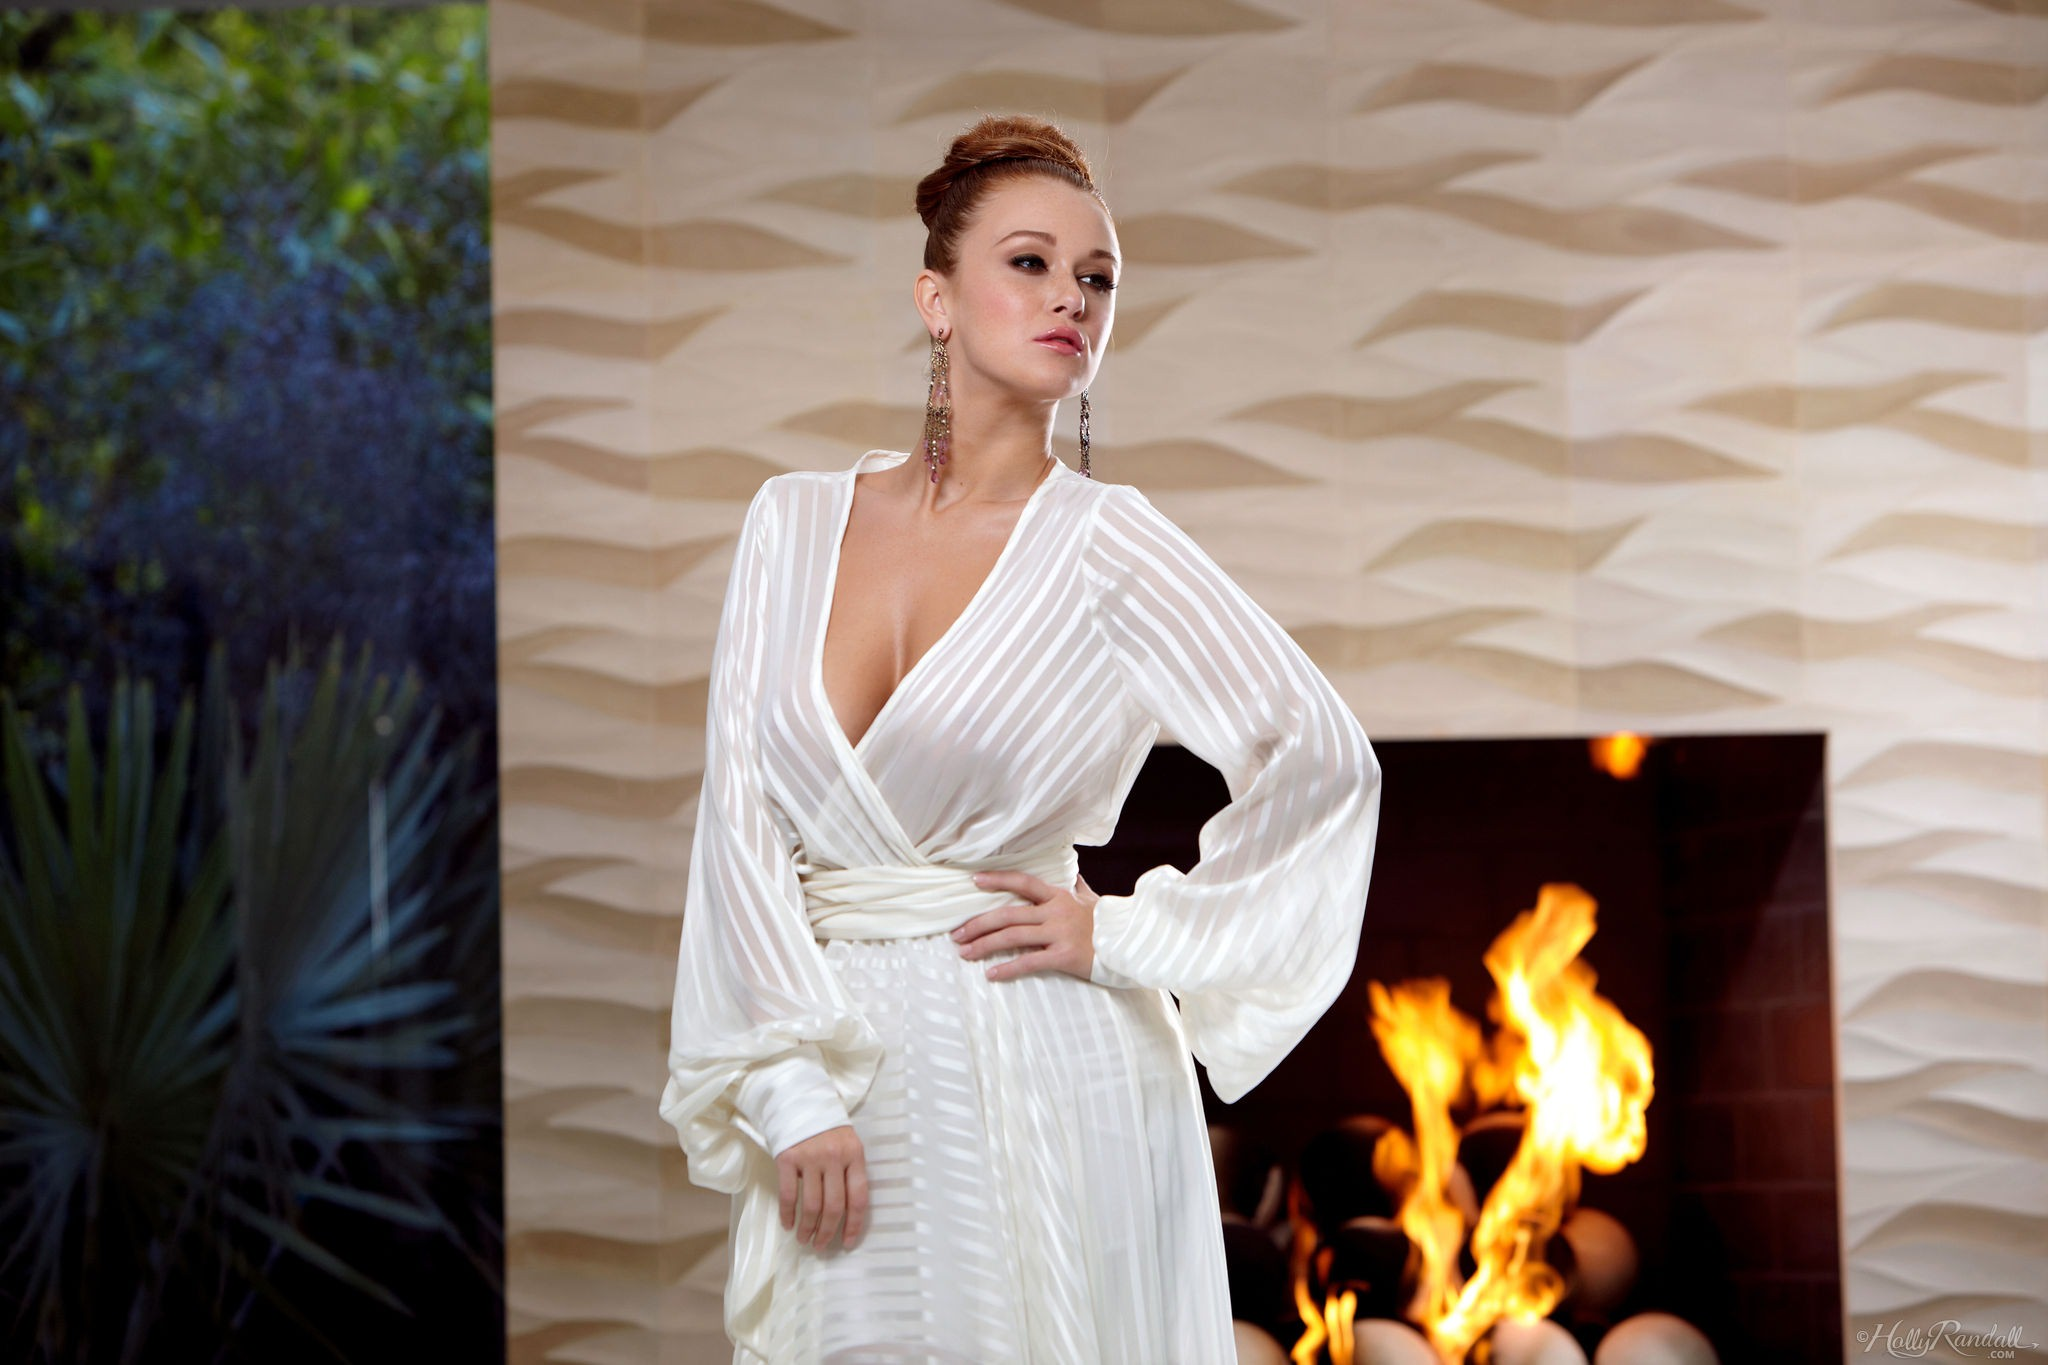 Leanna Decker is a Girl On Fire for Holly Randall | Daily Girls @ Female Update